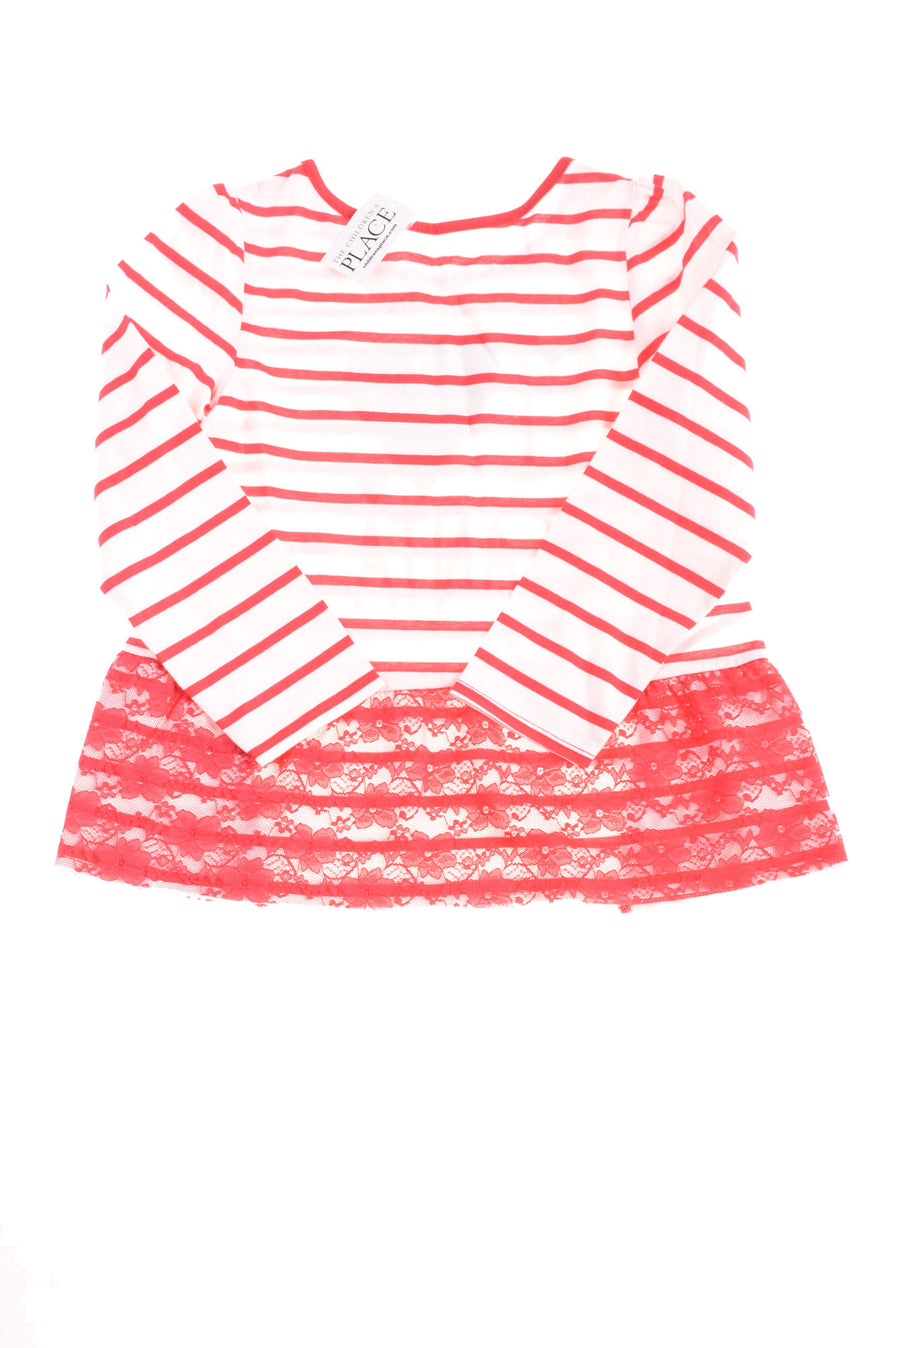 Toddler Girl's Top By The Children's Place